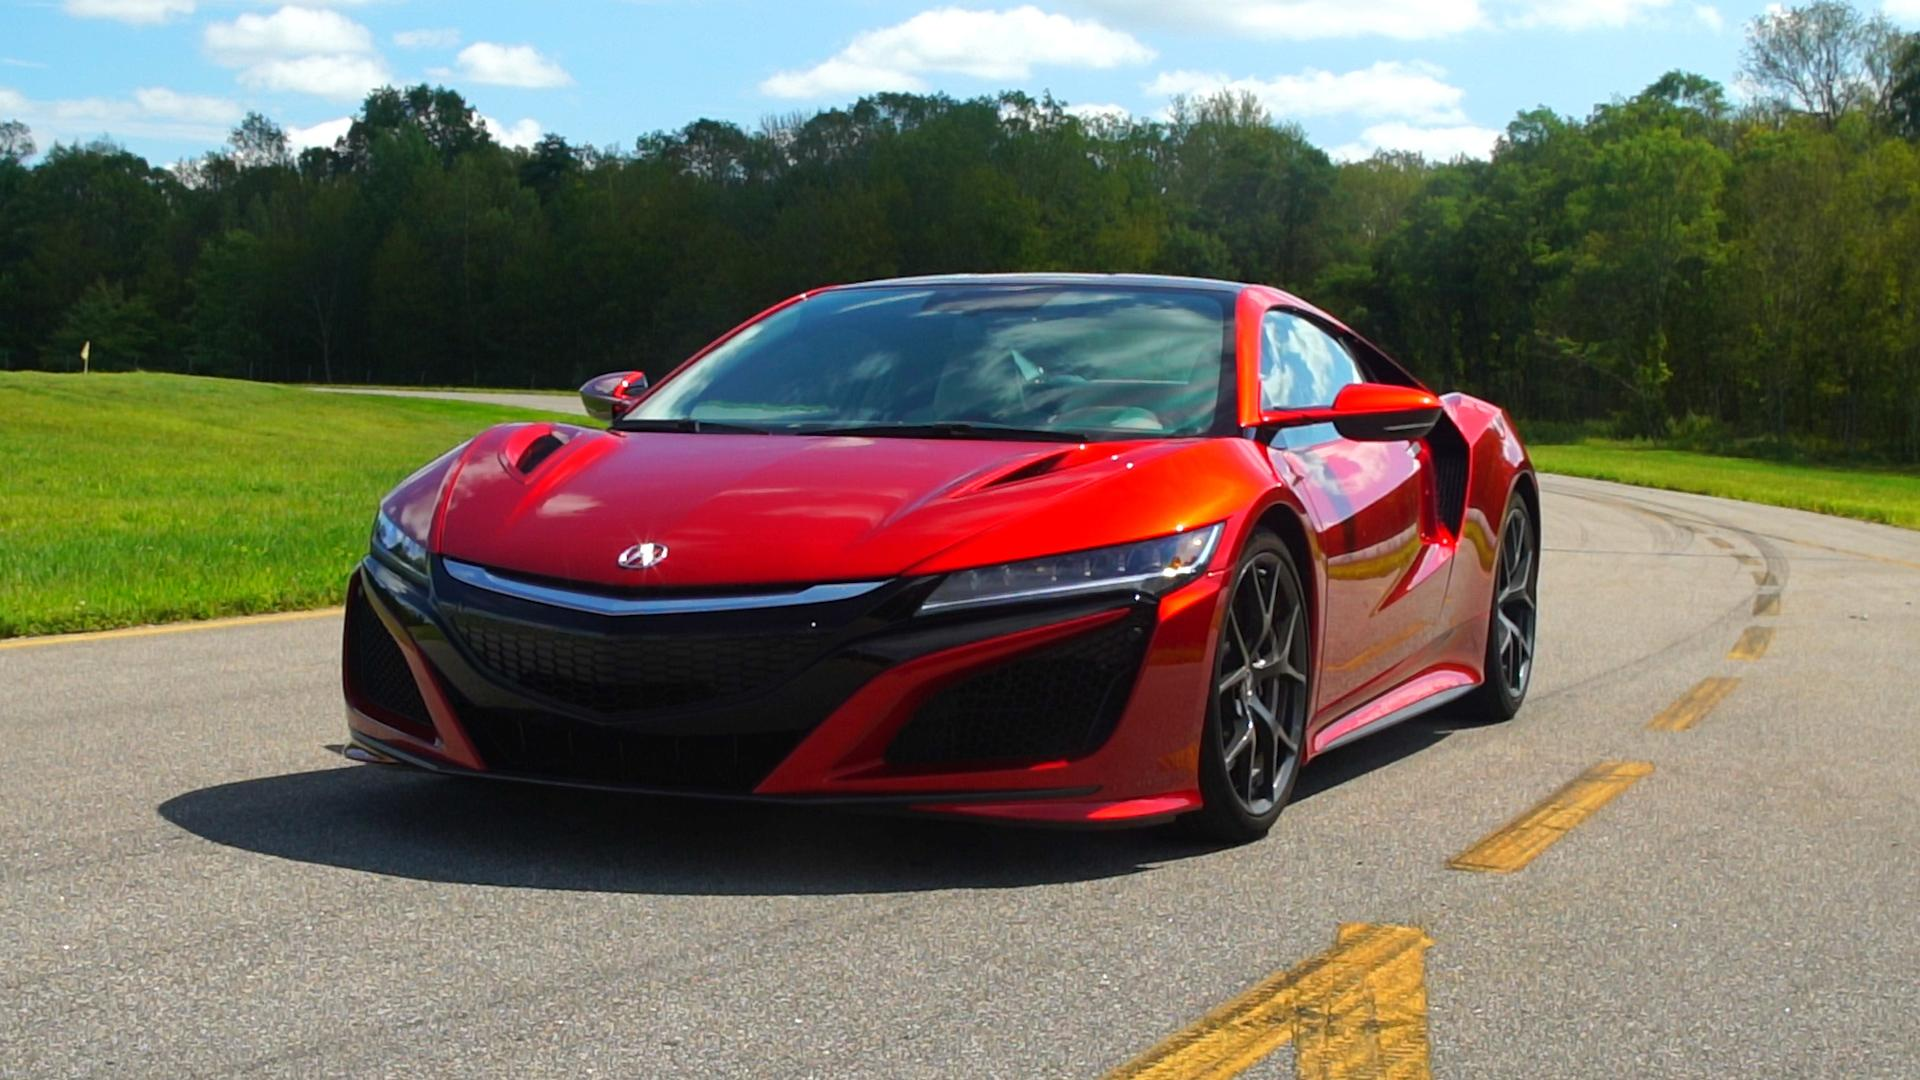 Acura Nsx Hybrid Is The Friendly Supercar Consumer Reports